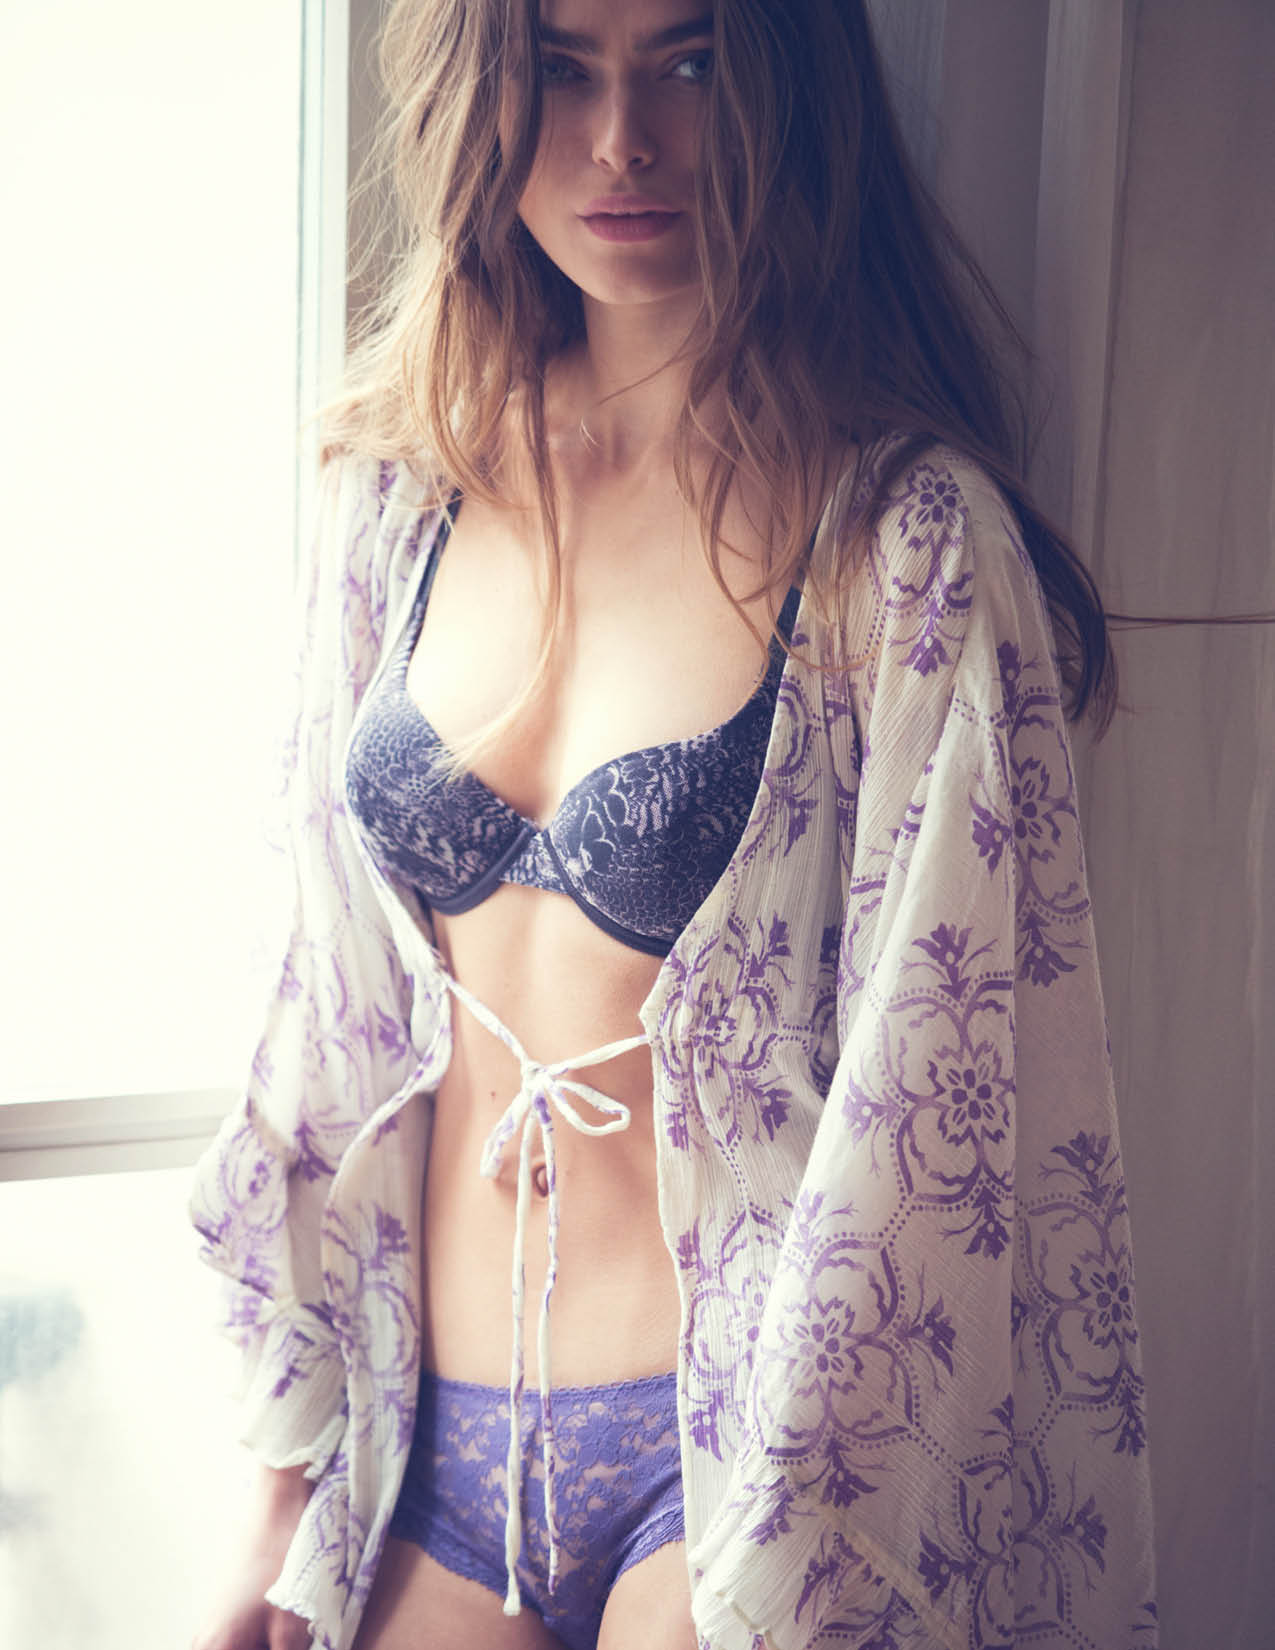 intimates10 Sophie Vlaming Poses in Paris For Free Peoples Intimates Journal by David Bellemere